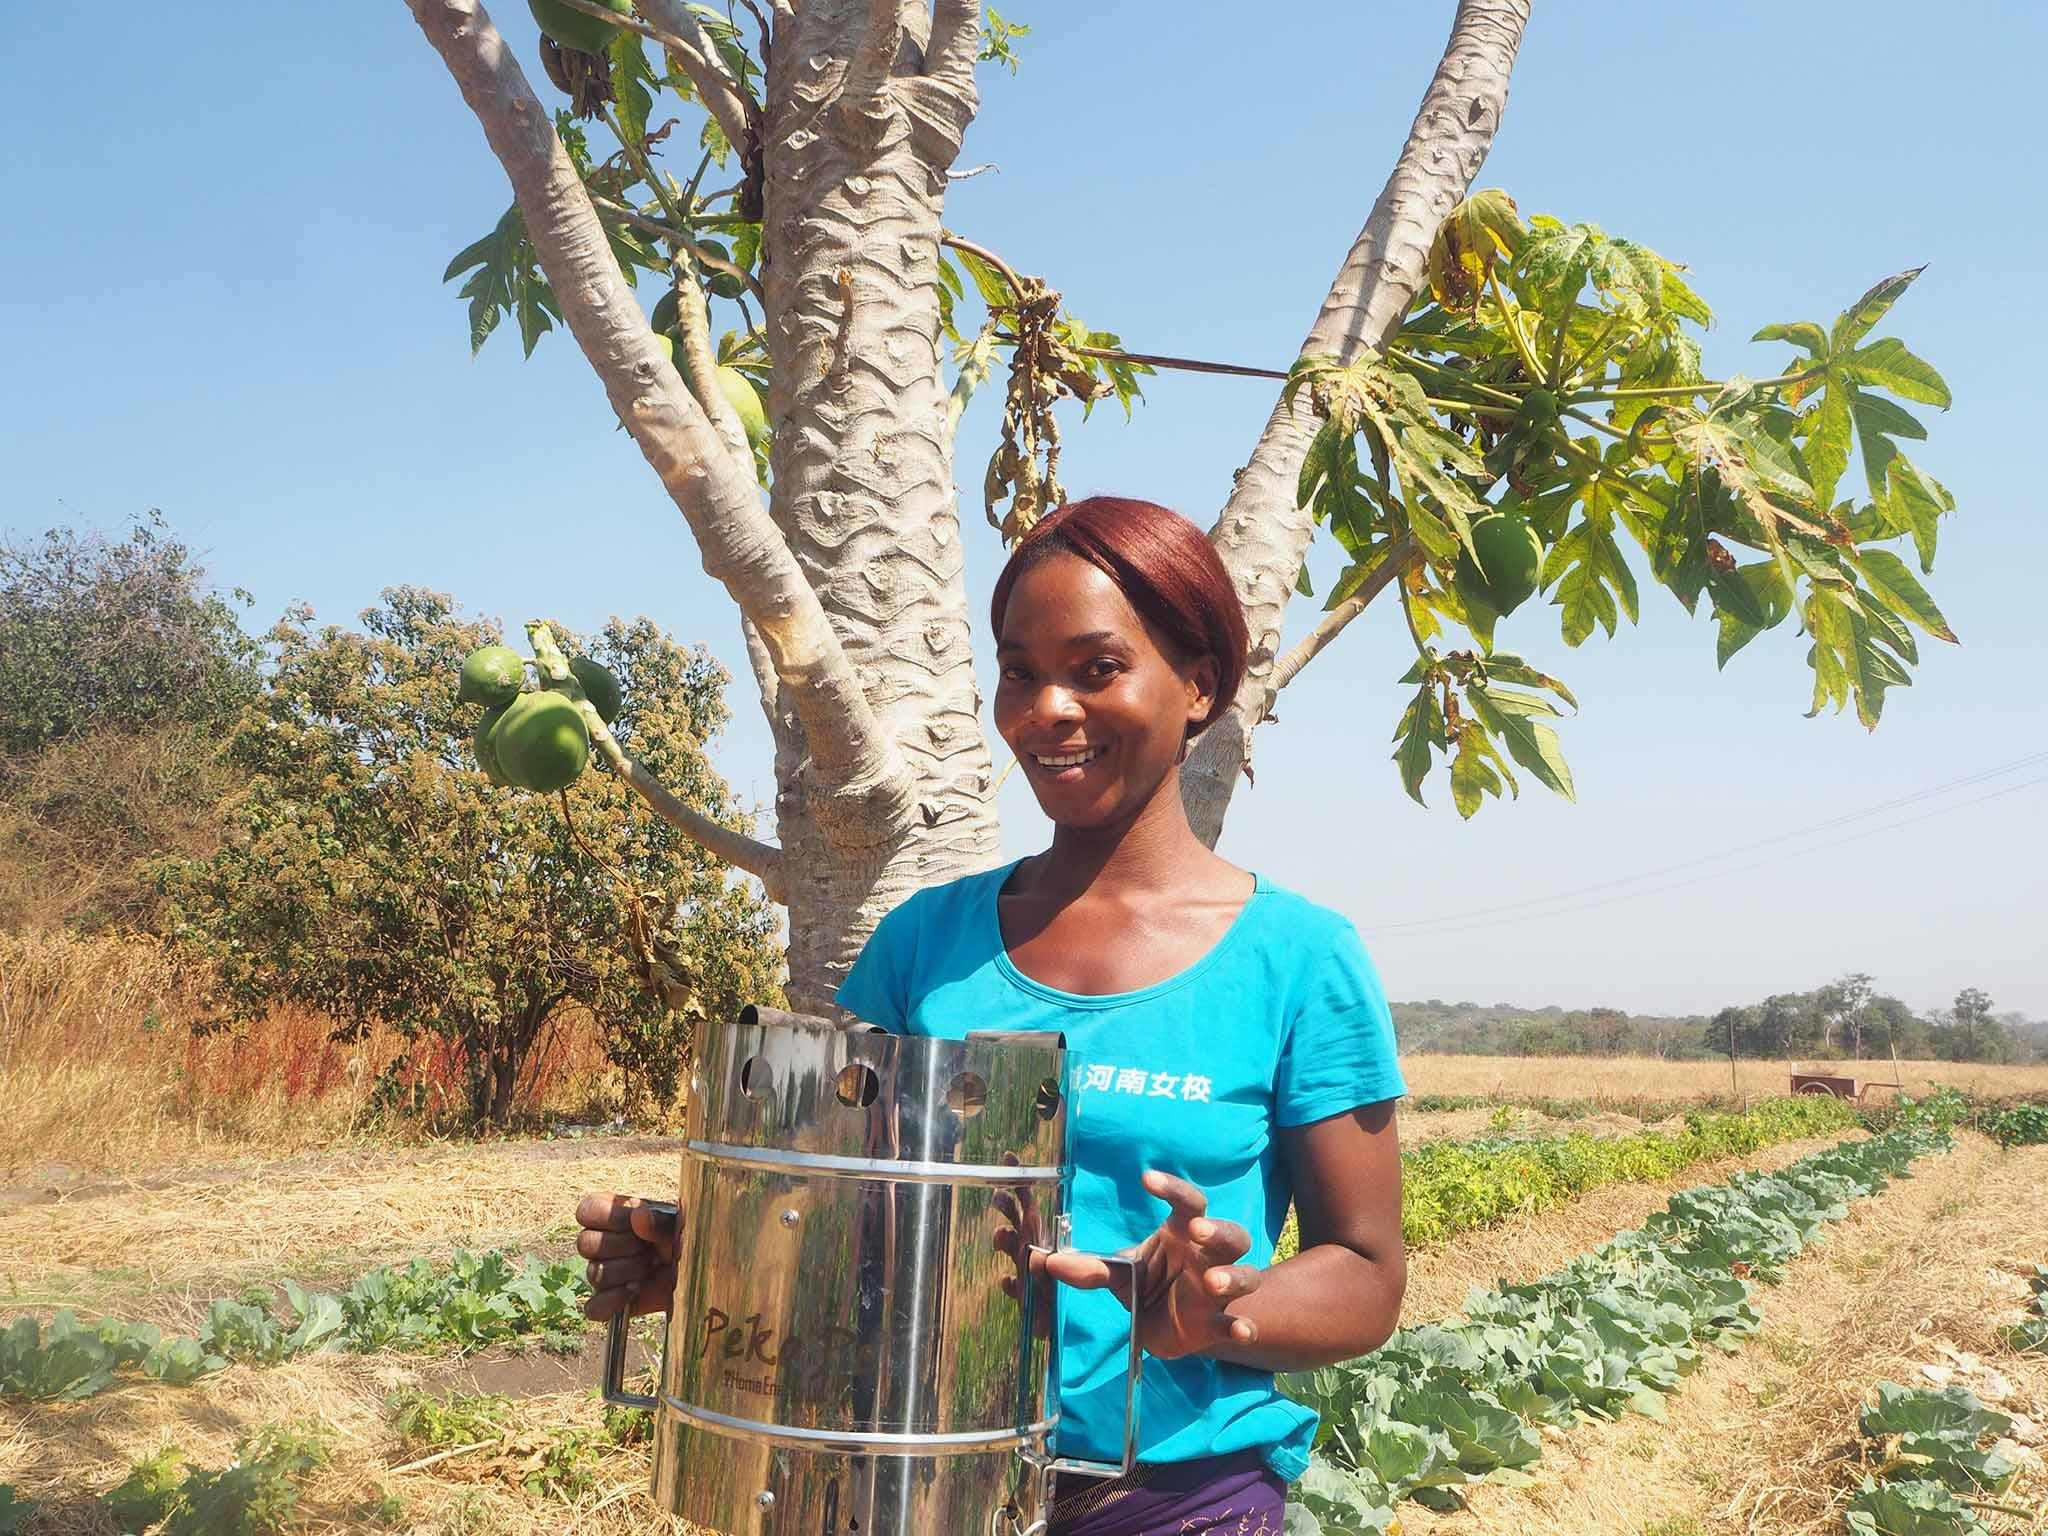 New project aims to prevent deforestation in Zambia by turning women into entrepreneurs